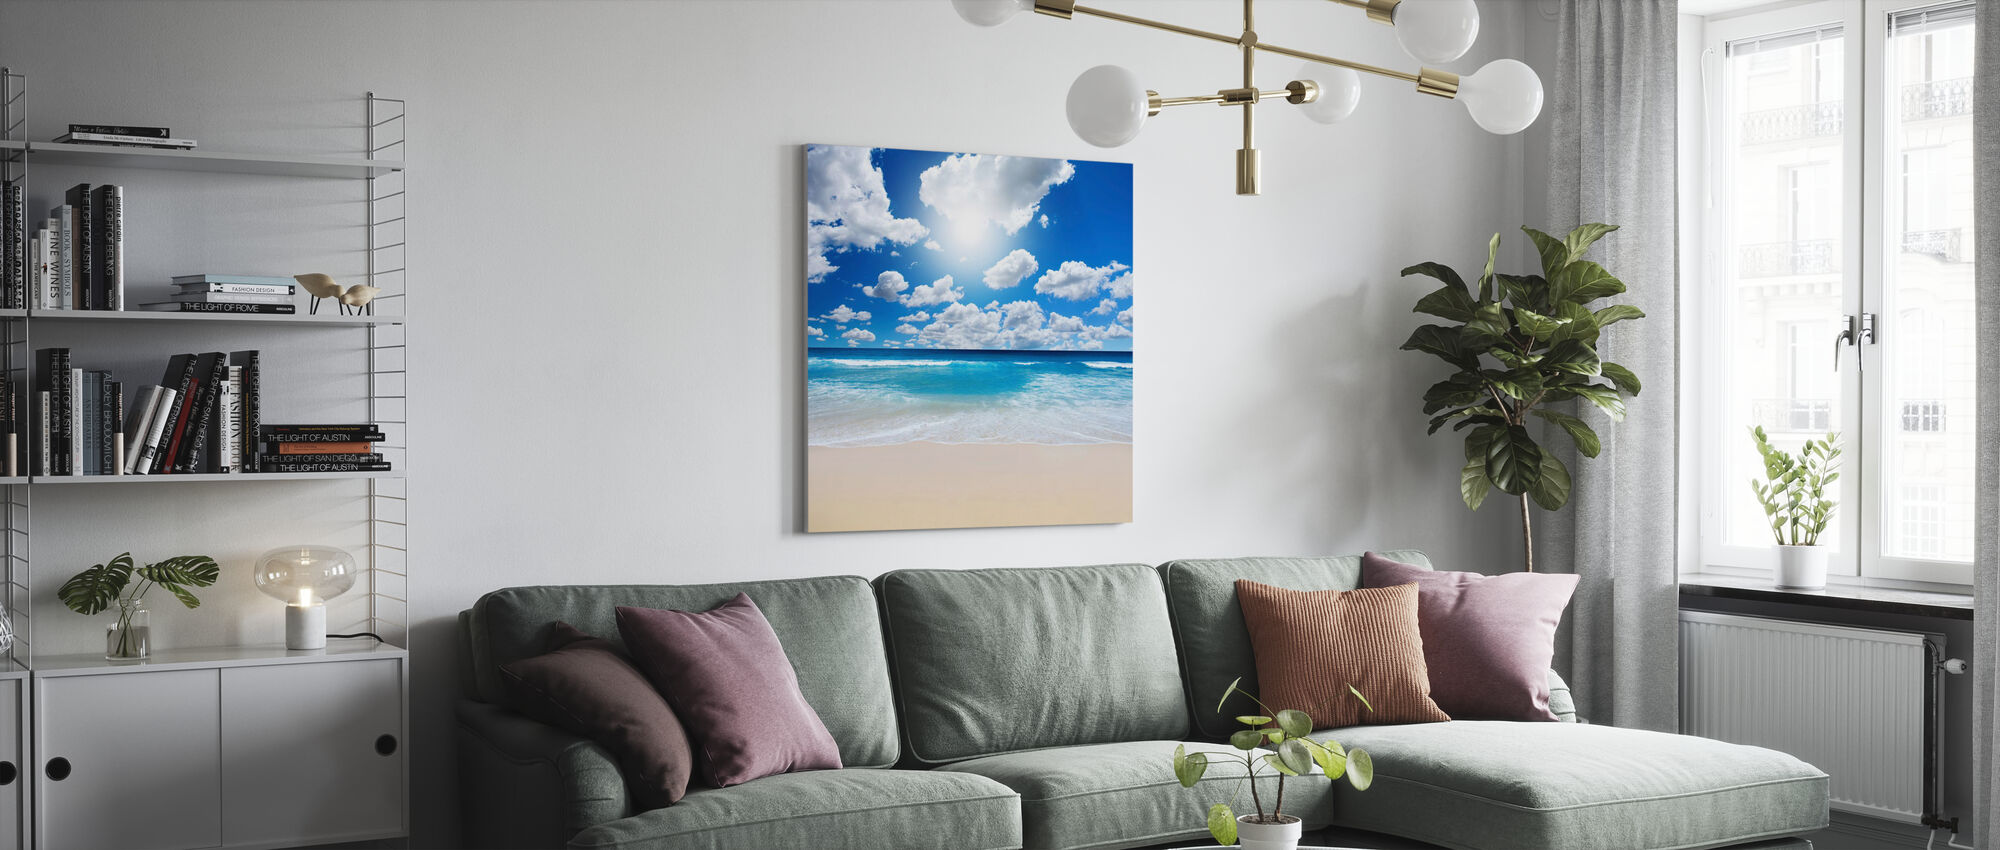 Summertime at the Beach - Canvas print - Living Room